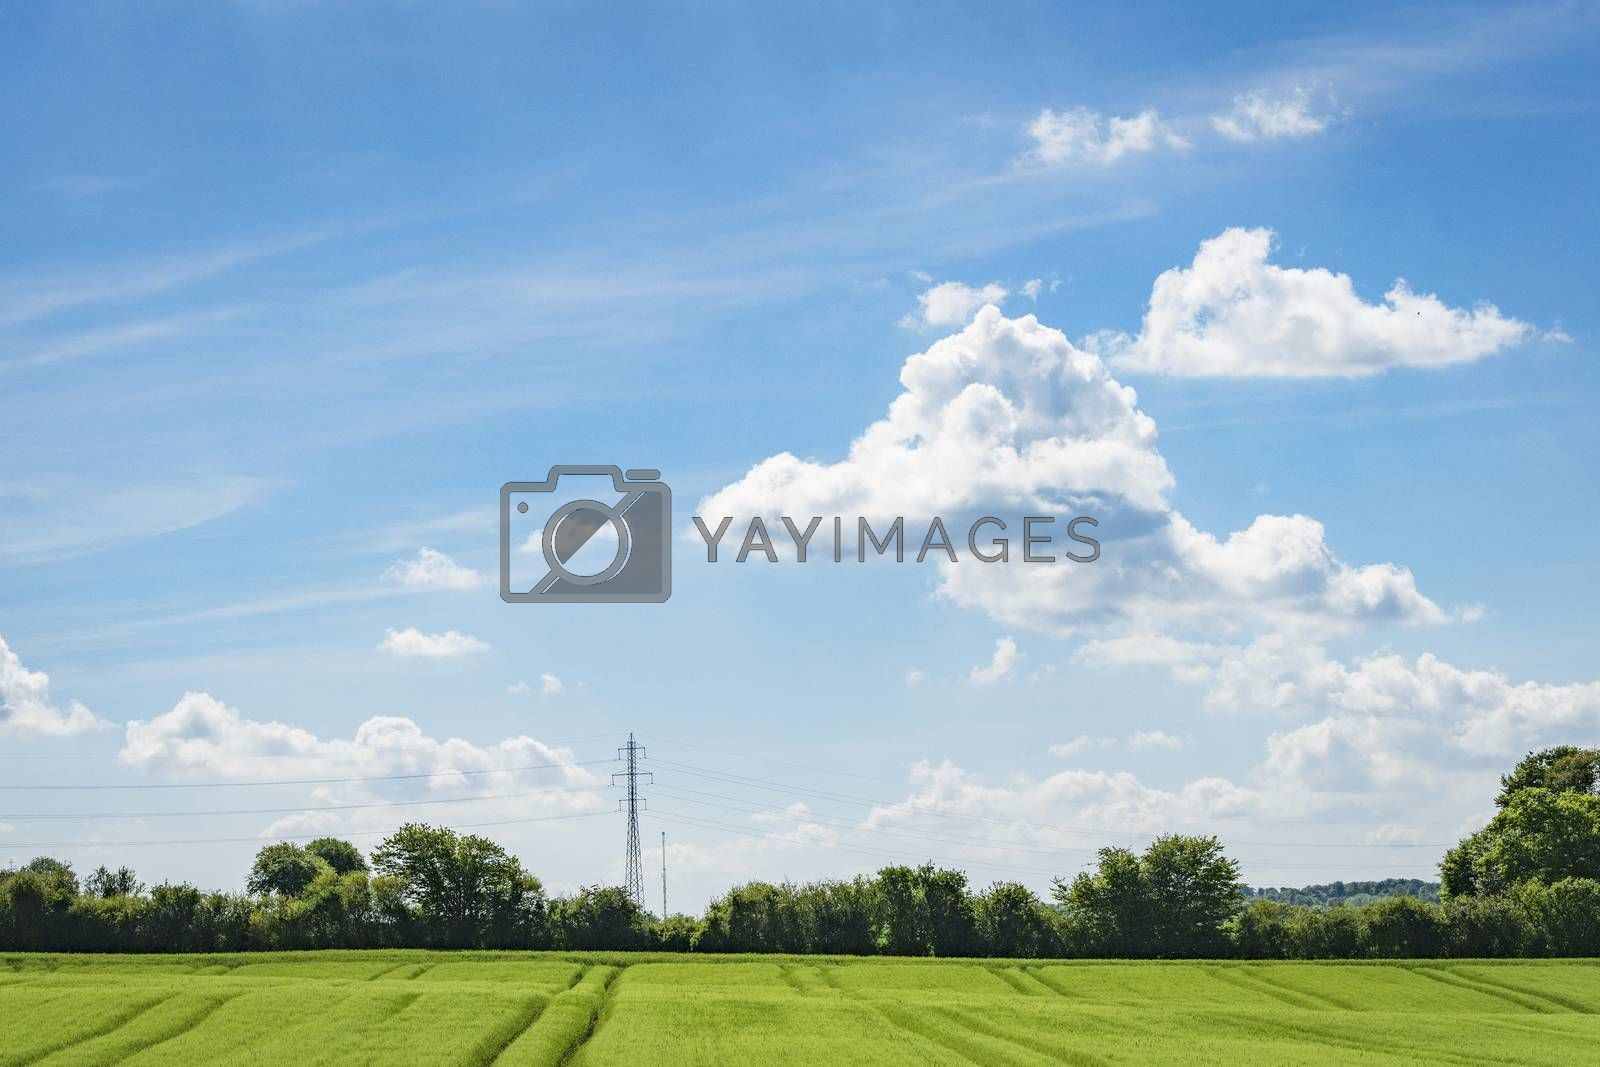 Green fields in a rural countryside landscape with trees and pylons and white clouds on blue sky